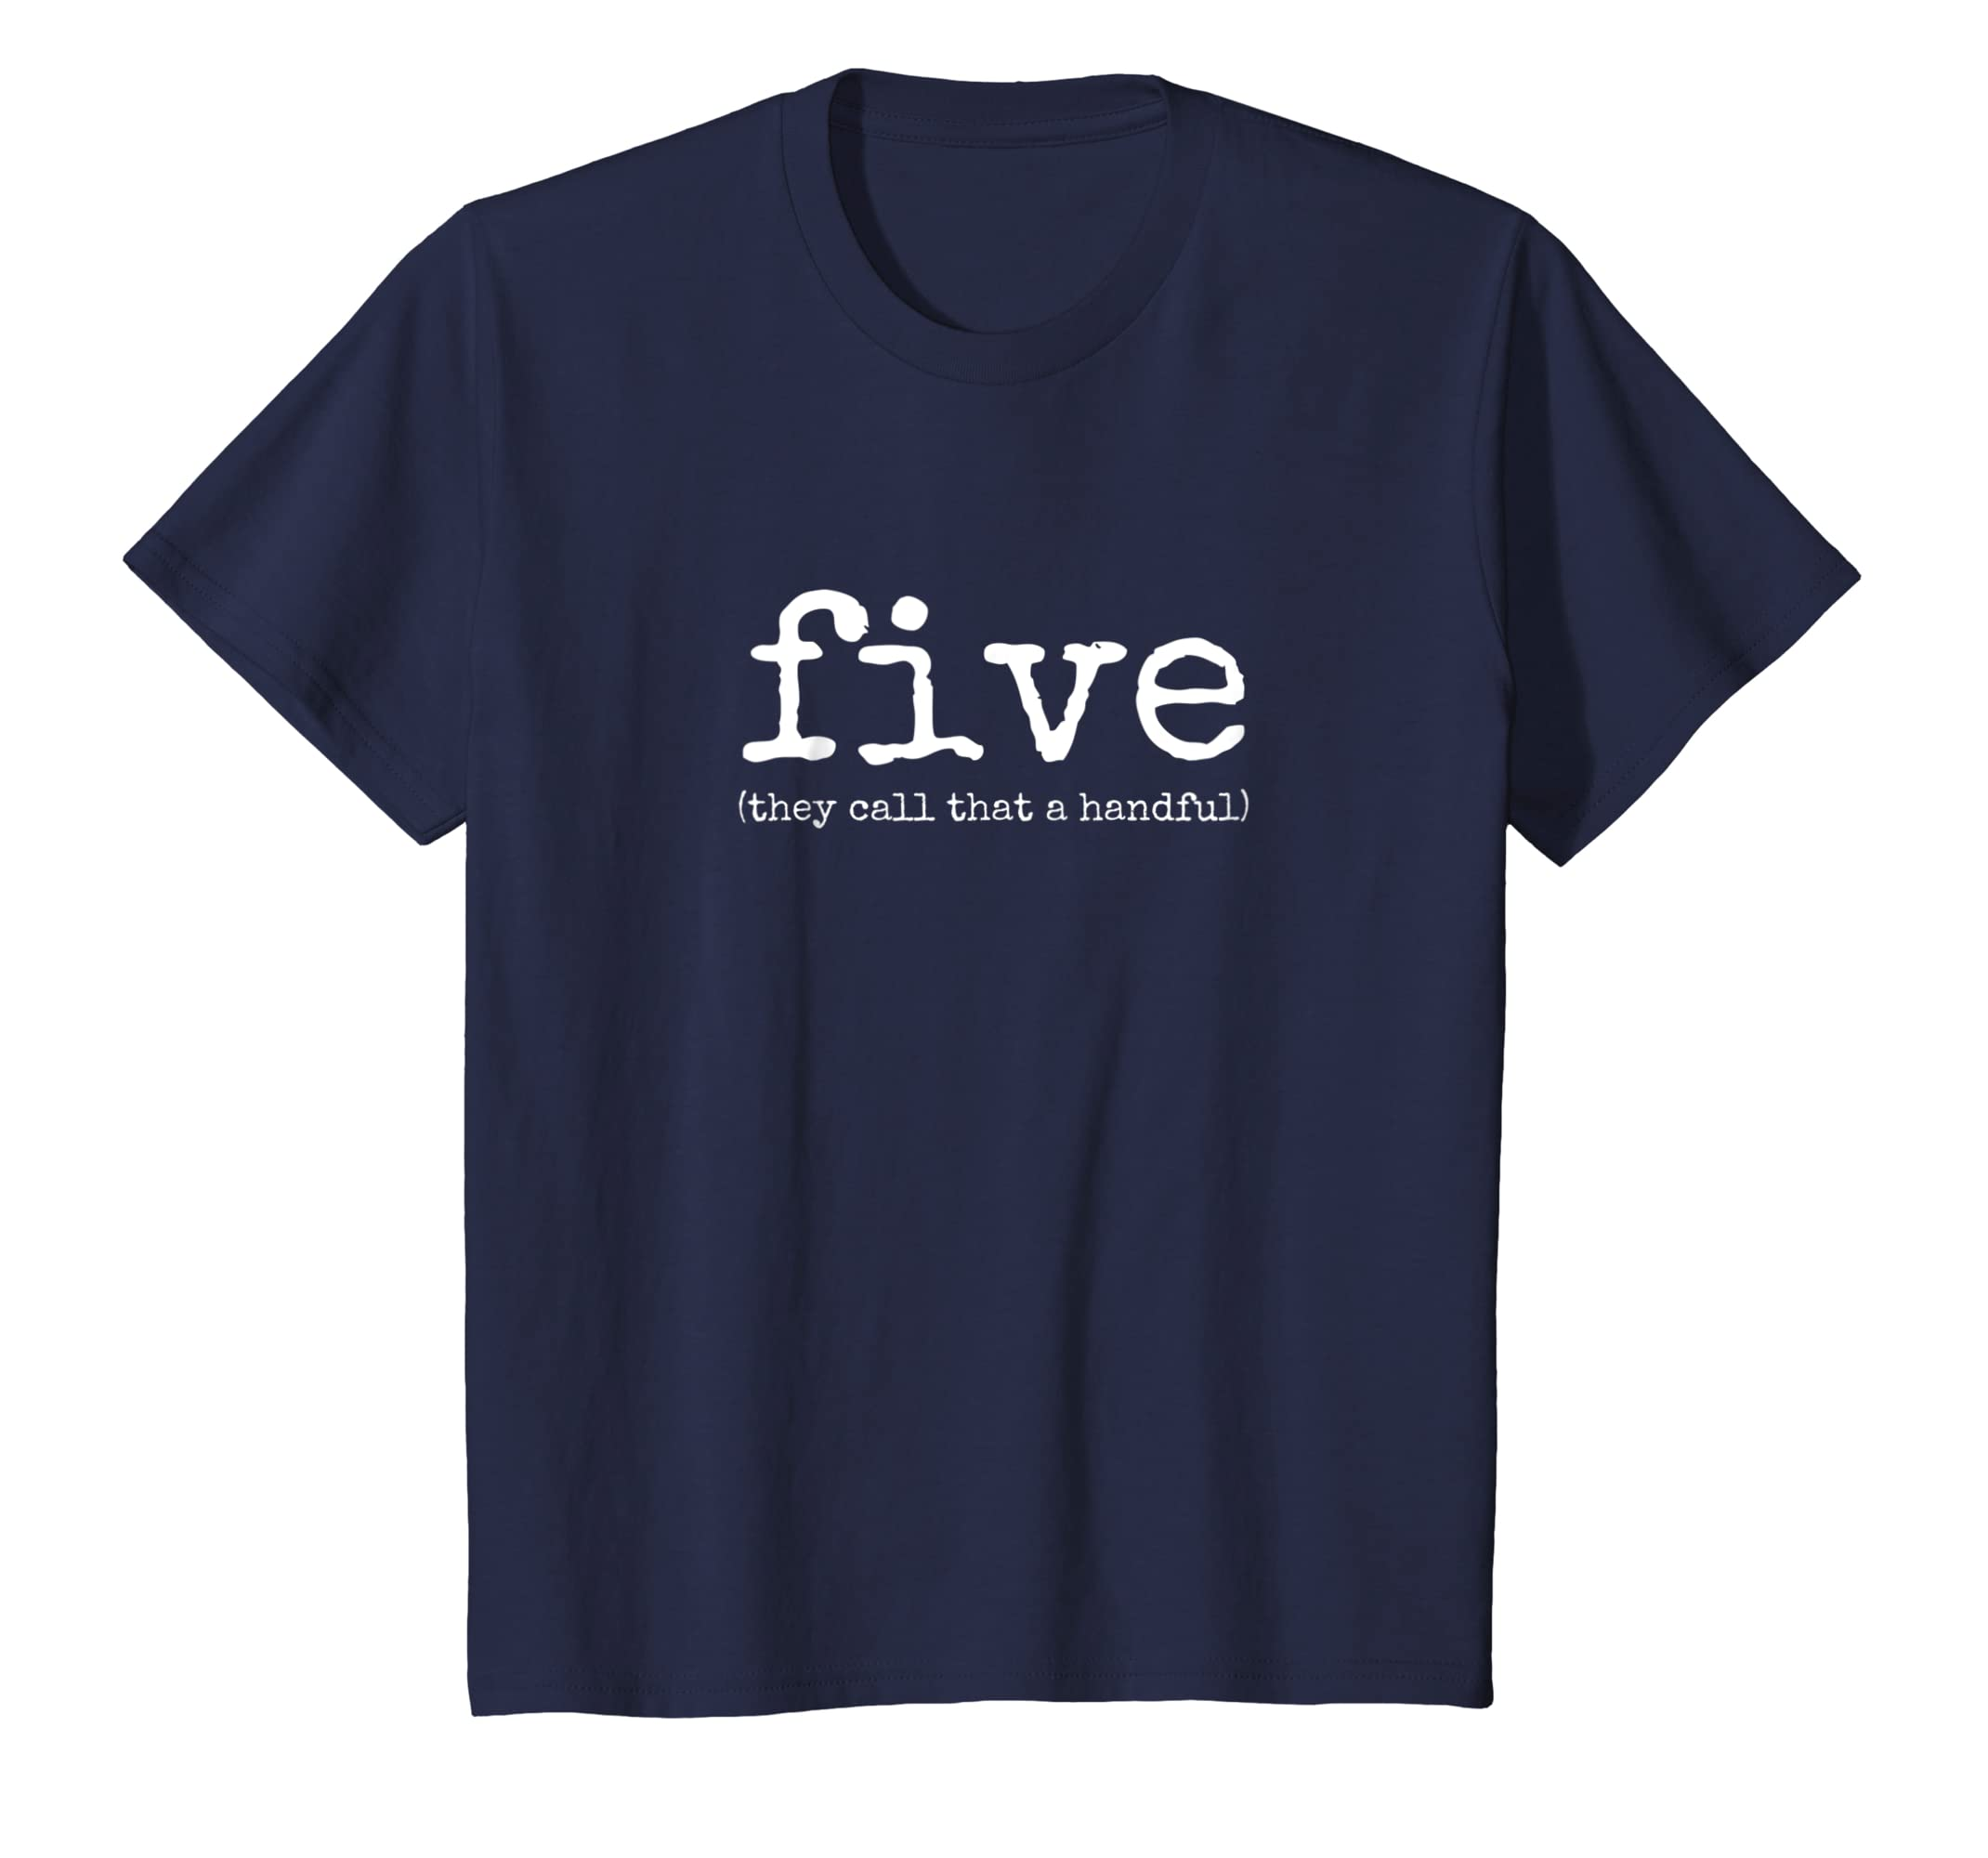 94f8973df Amazon.com: Kids 5th Birthday Shirt for Boys - Gift for 5 Year Old Kids:  Clothing